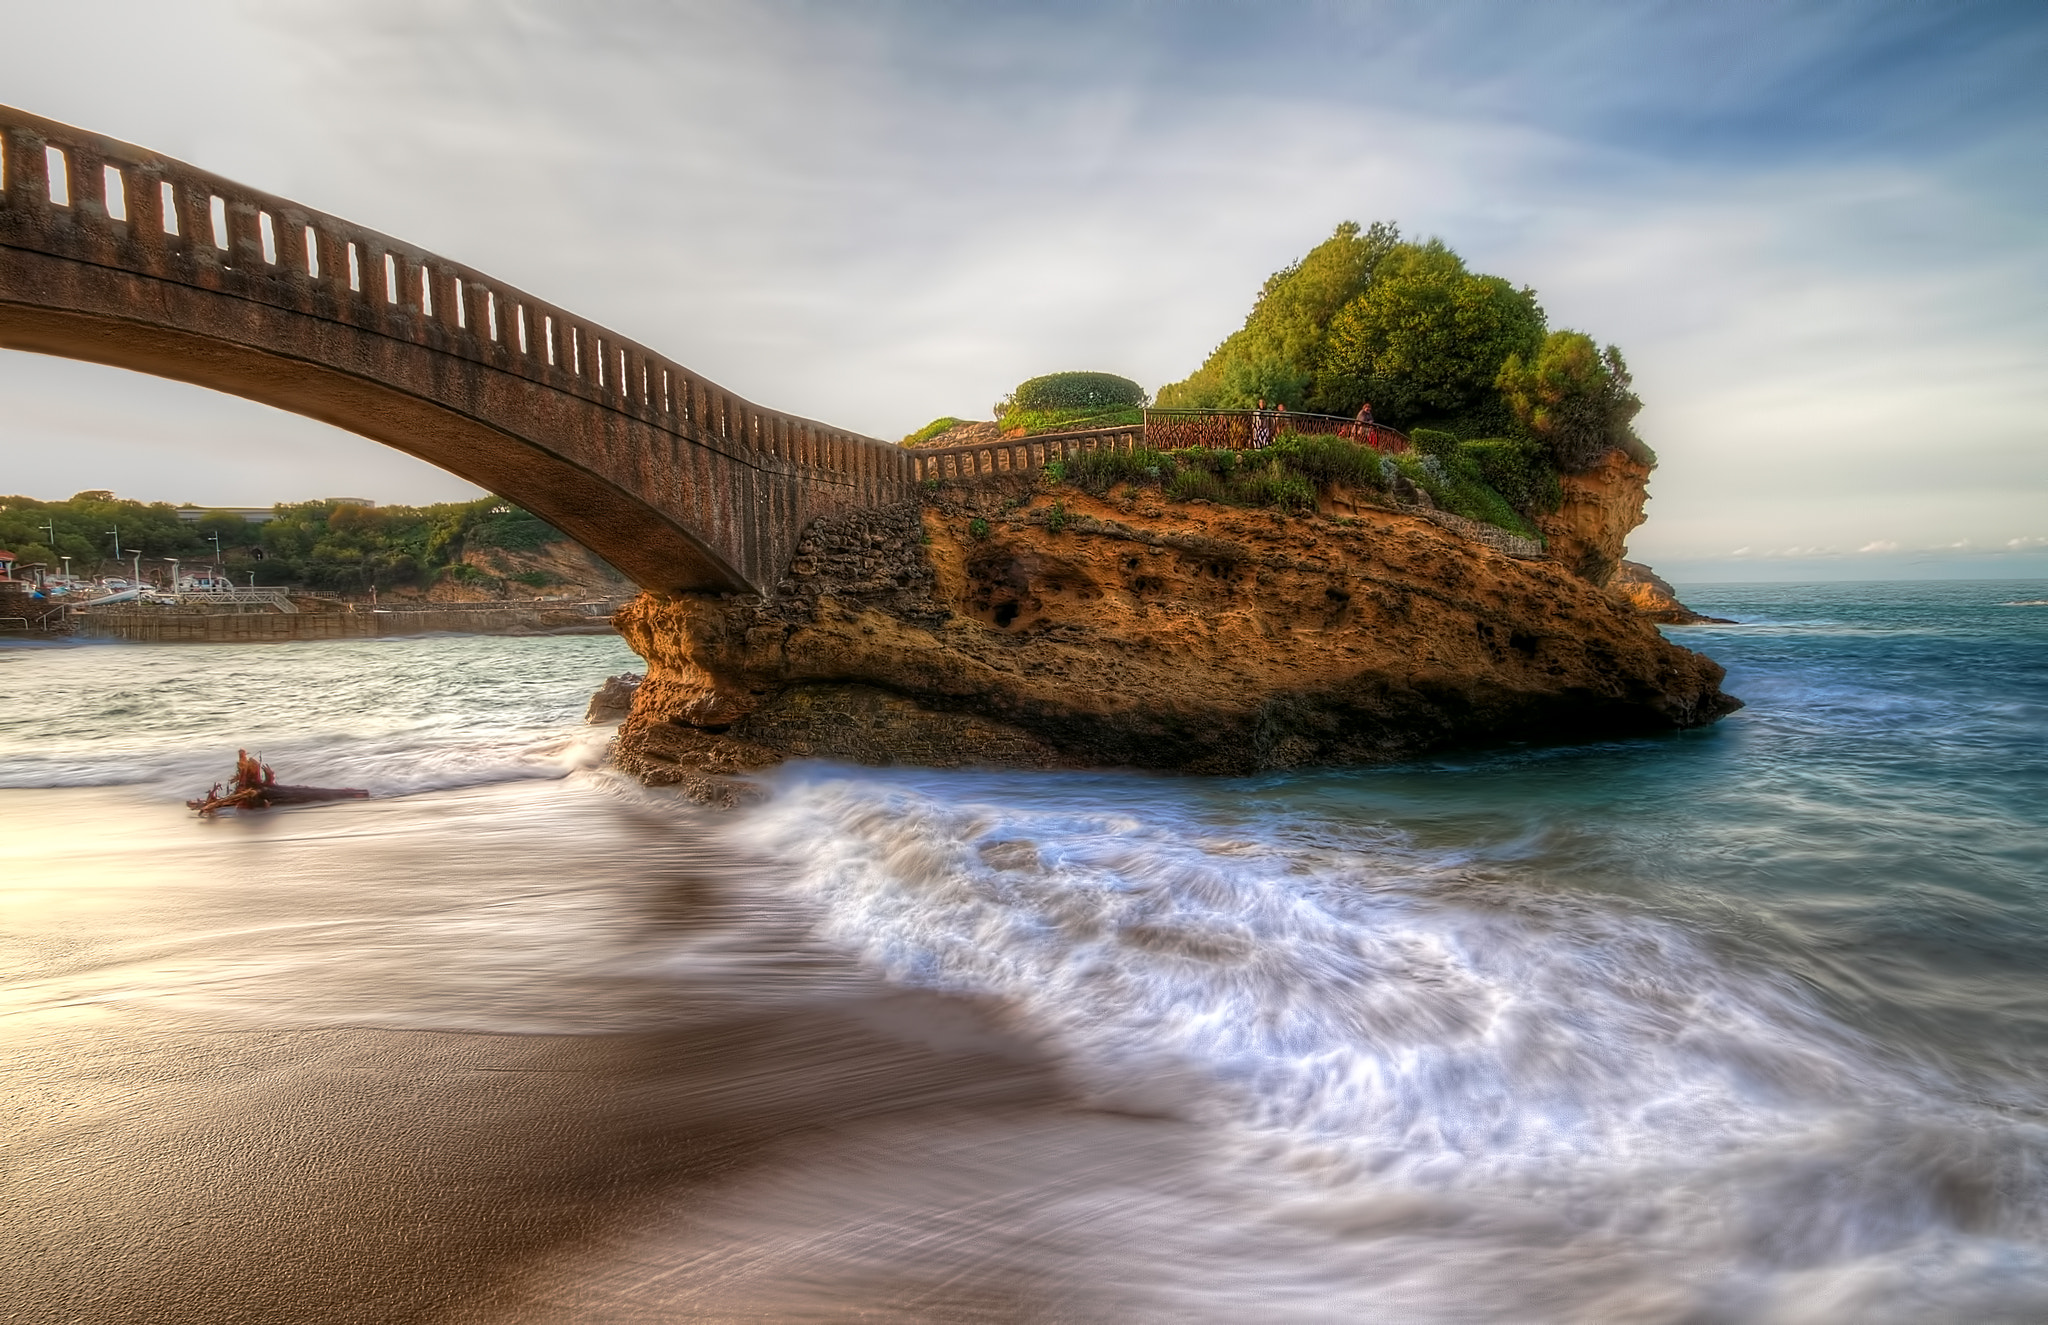 Photograph Biarritz, France by Sylvain Millier on 500px